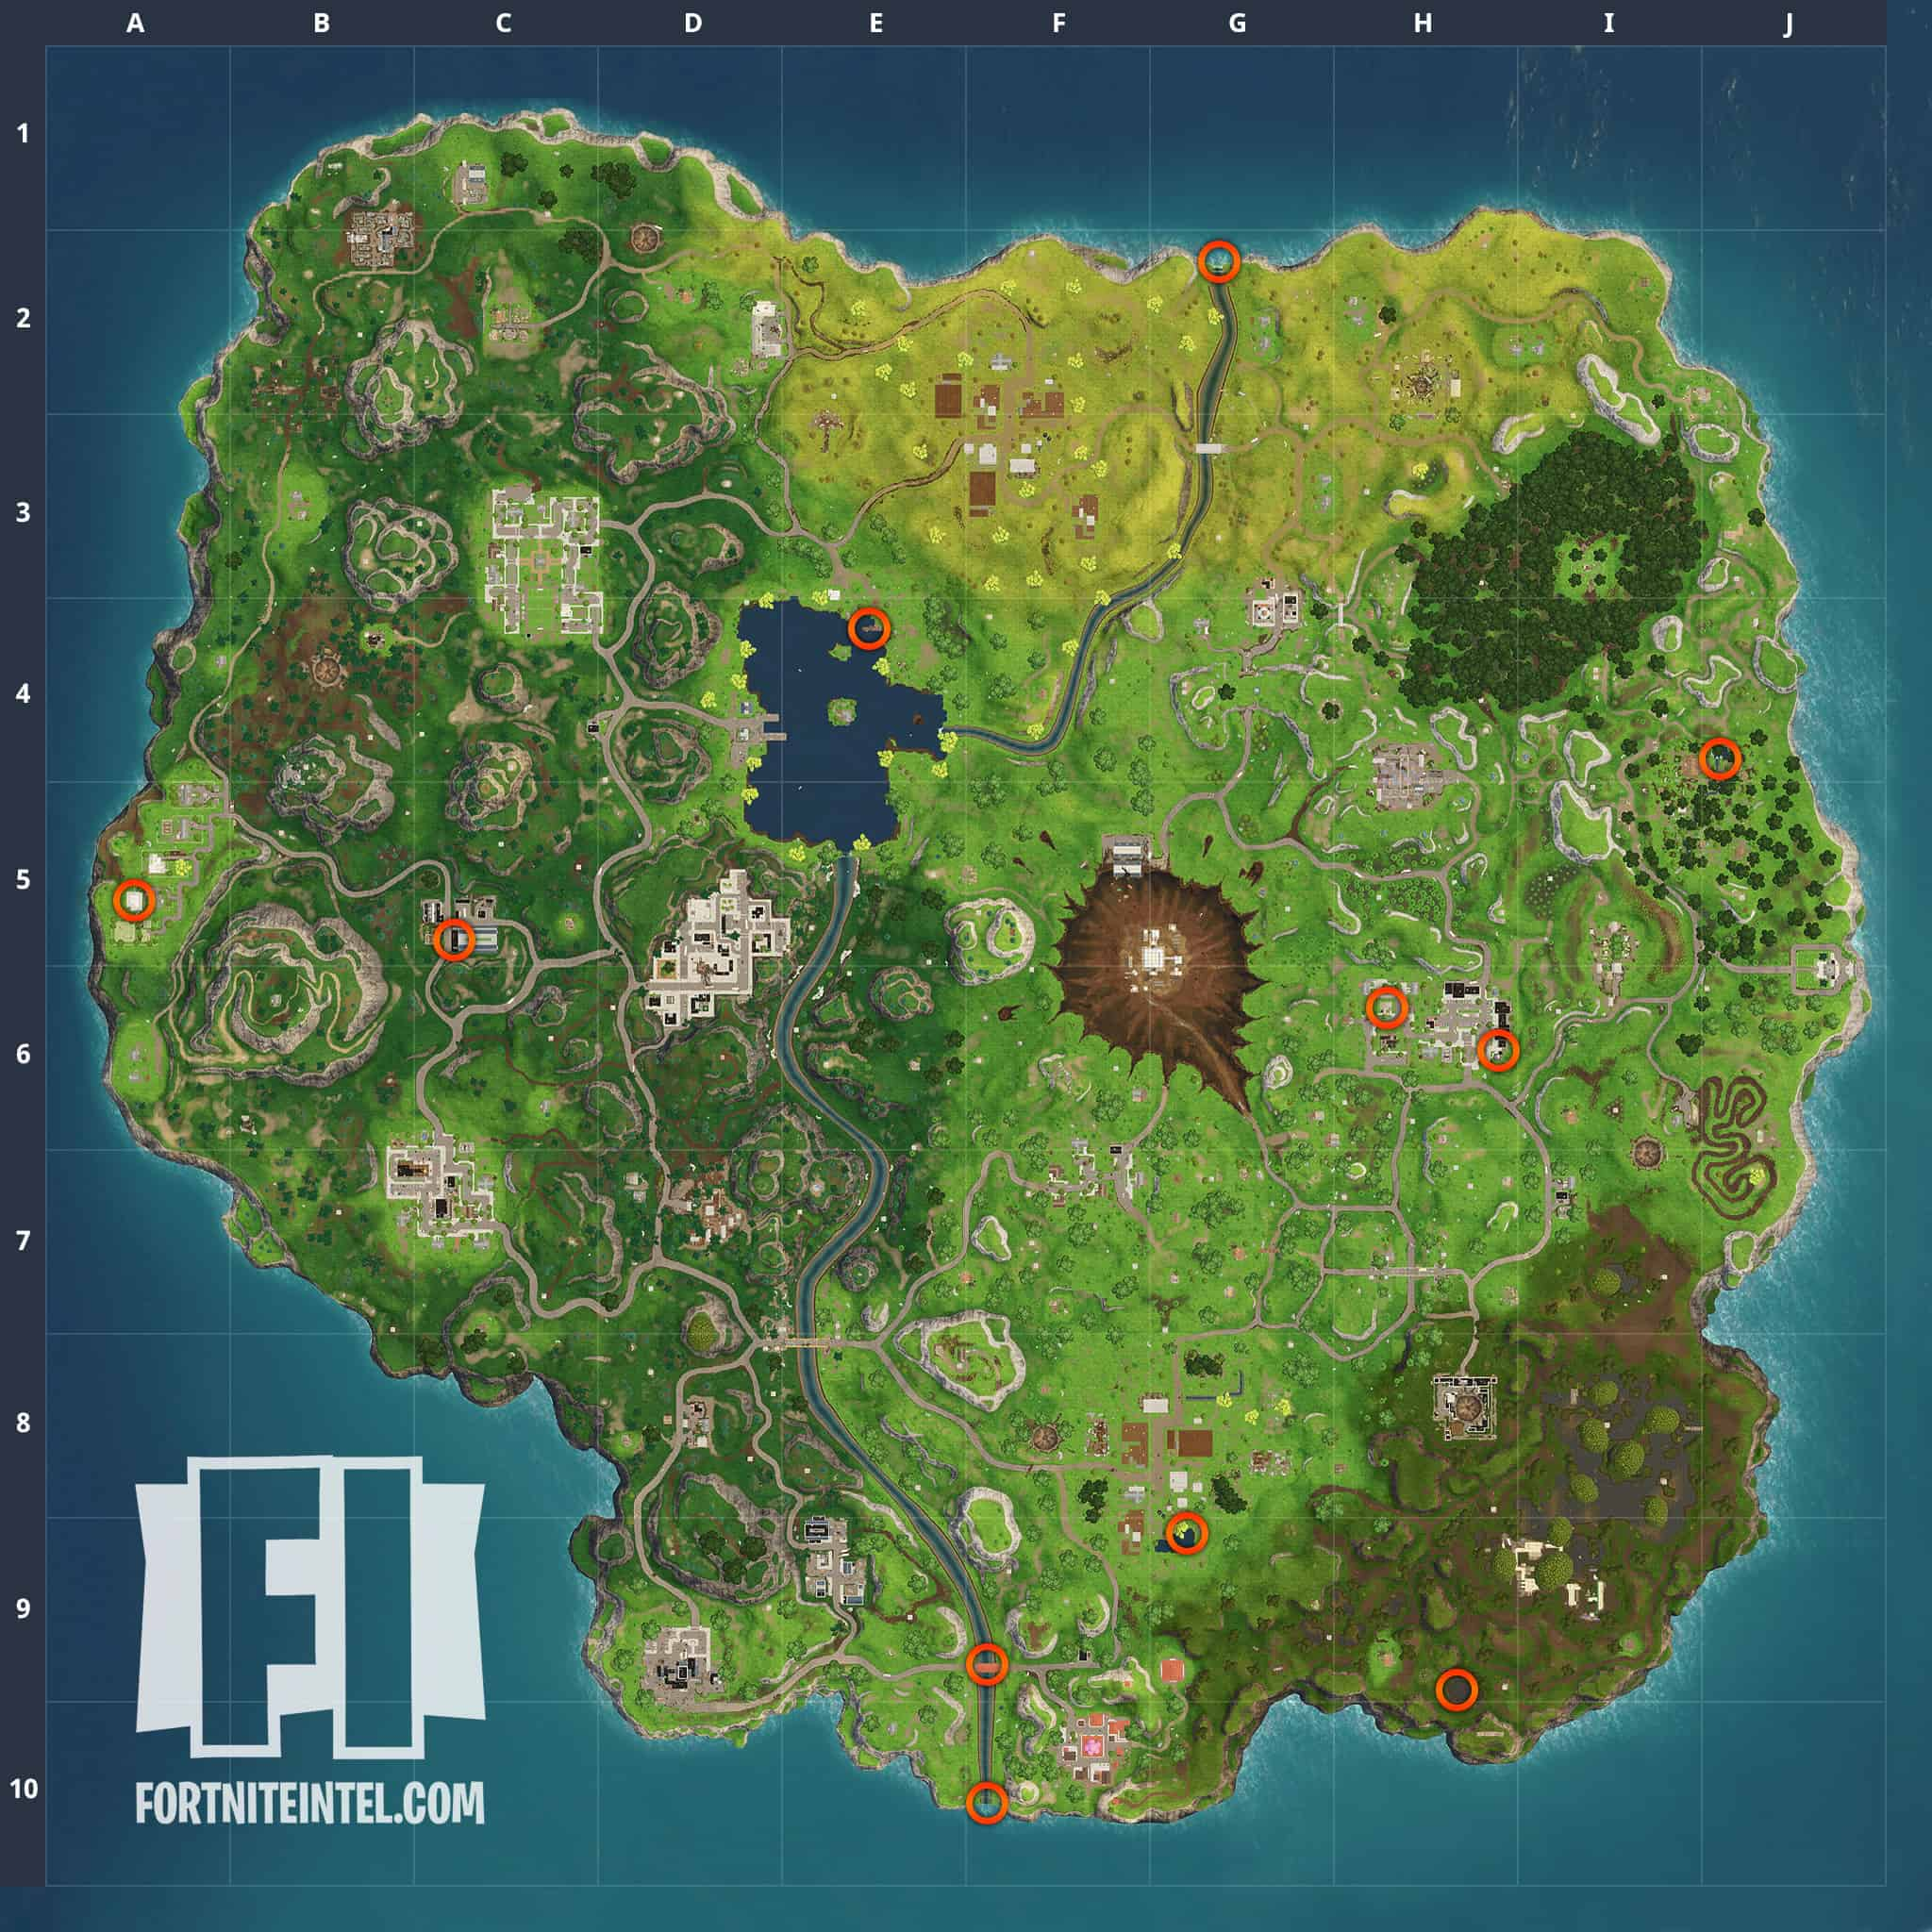 Fortnite rubber duckies map